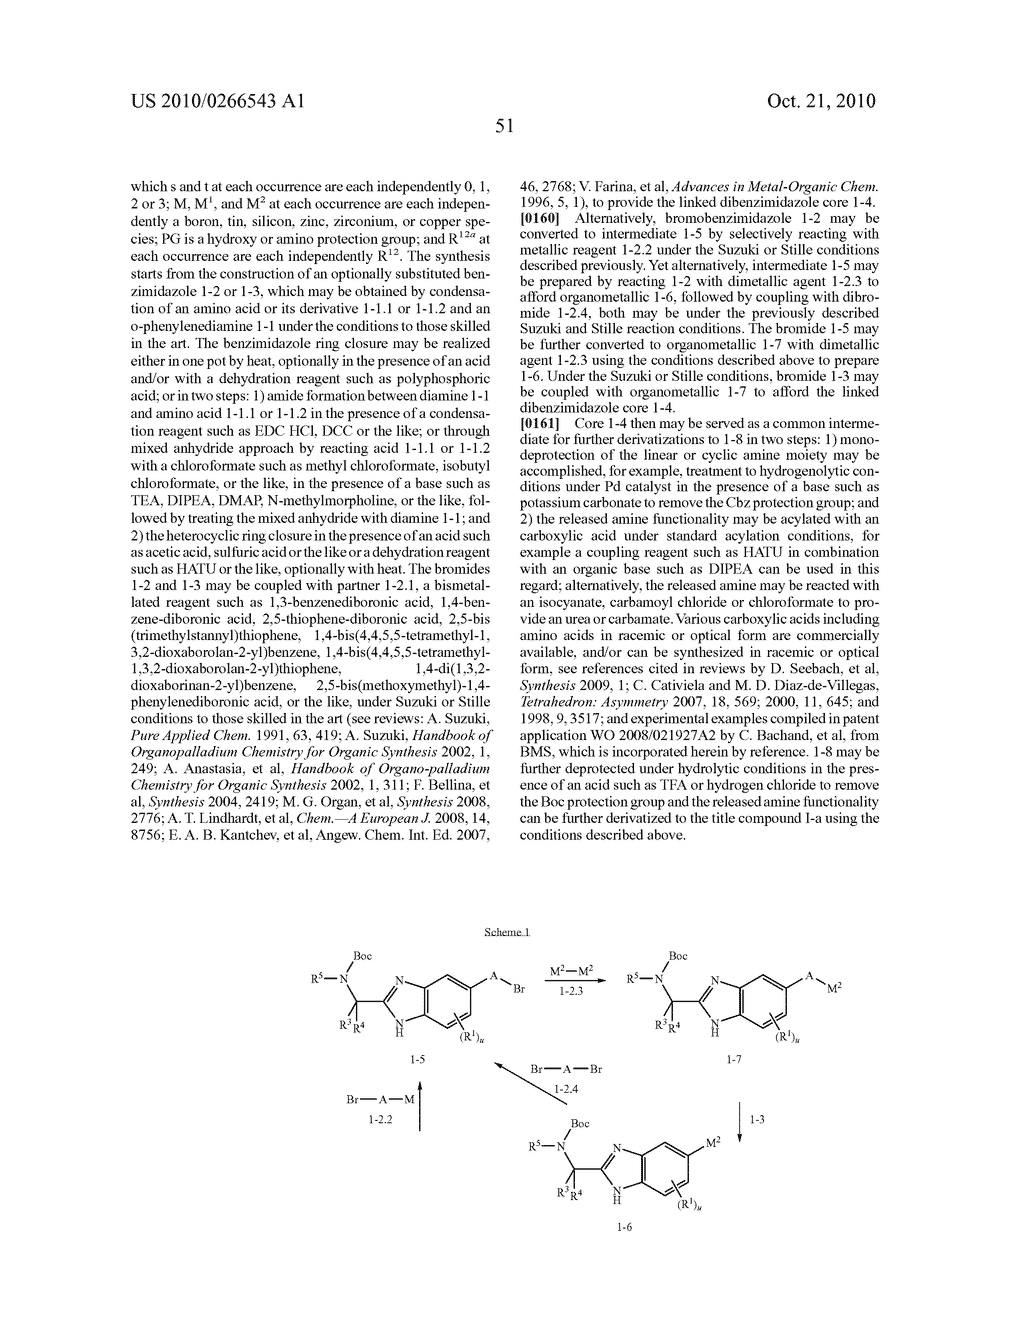 LINKED DIBENZIMIDAZOLE ANTIVIRALS - diagram, schematic, and image 52